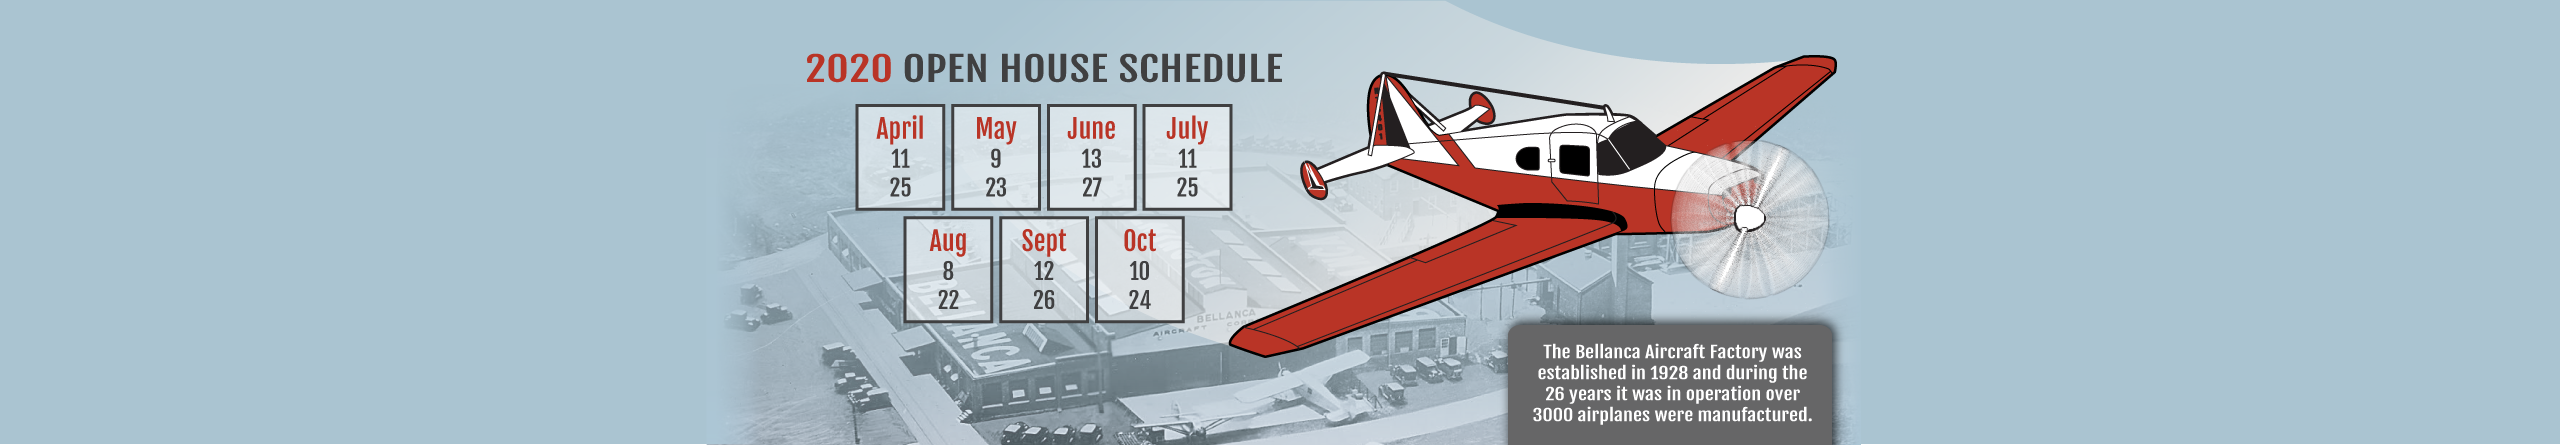 Bellanca Museum 2020 Schedule - New Castle, Delaware